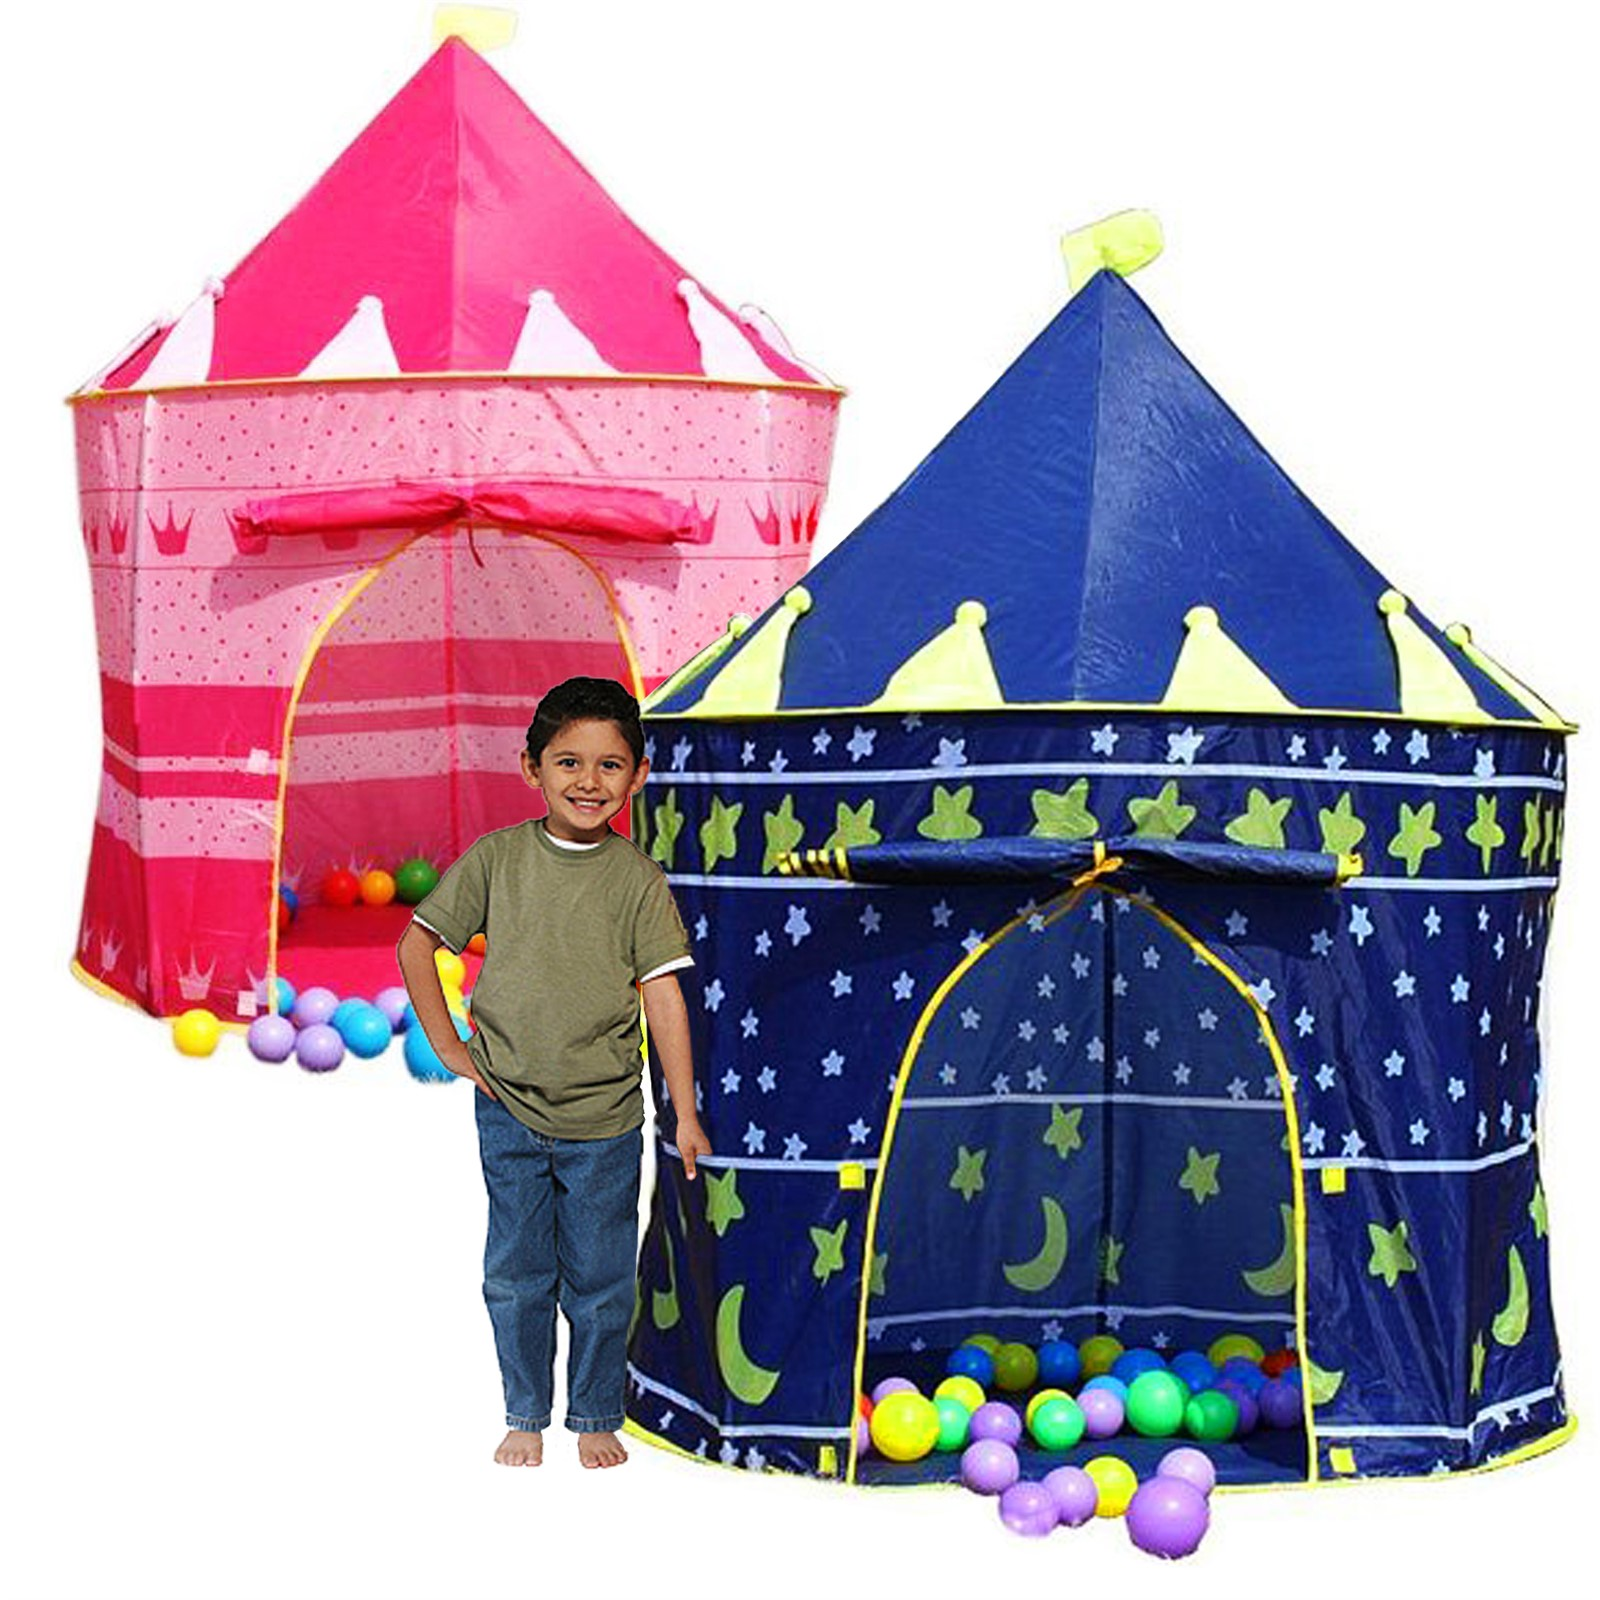 CHILDRENS KIDS POP UP CASTLE PLAYHOUSE GIRLS PRINCESS / BOYS WIZARD - PLAY TENT  sc 1 st  eBay & CHILDRENS KIDS POP UP CASTLE PLAYHOUSE GIRLS PRINCESS / BOYS ...